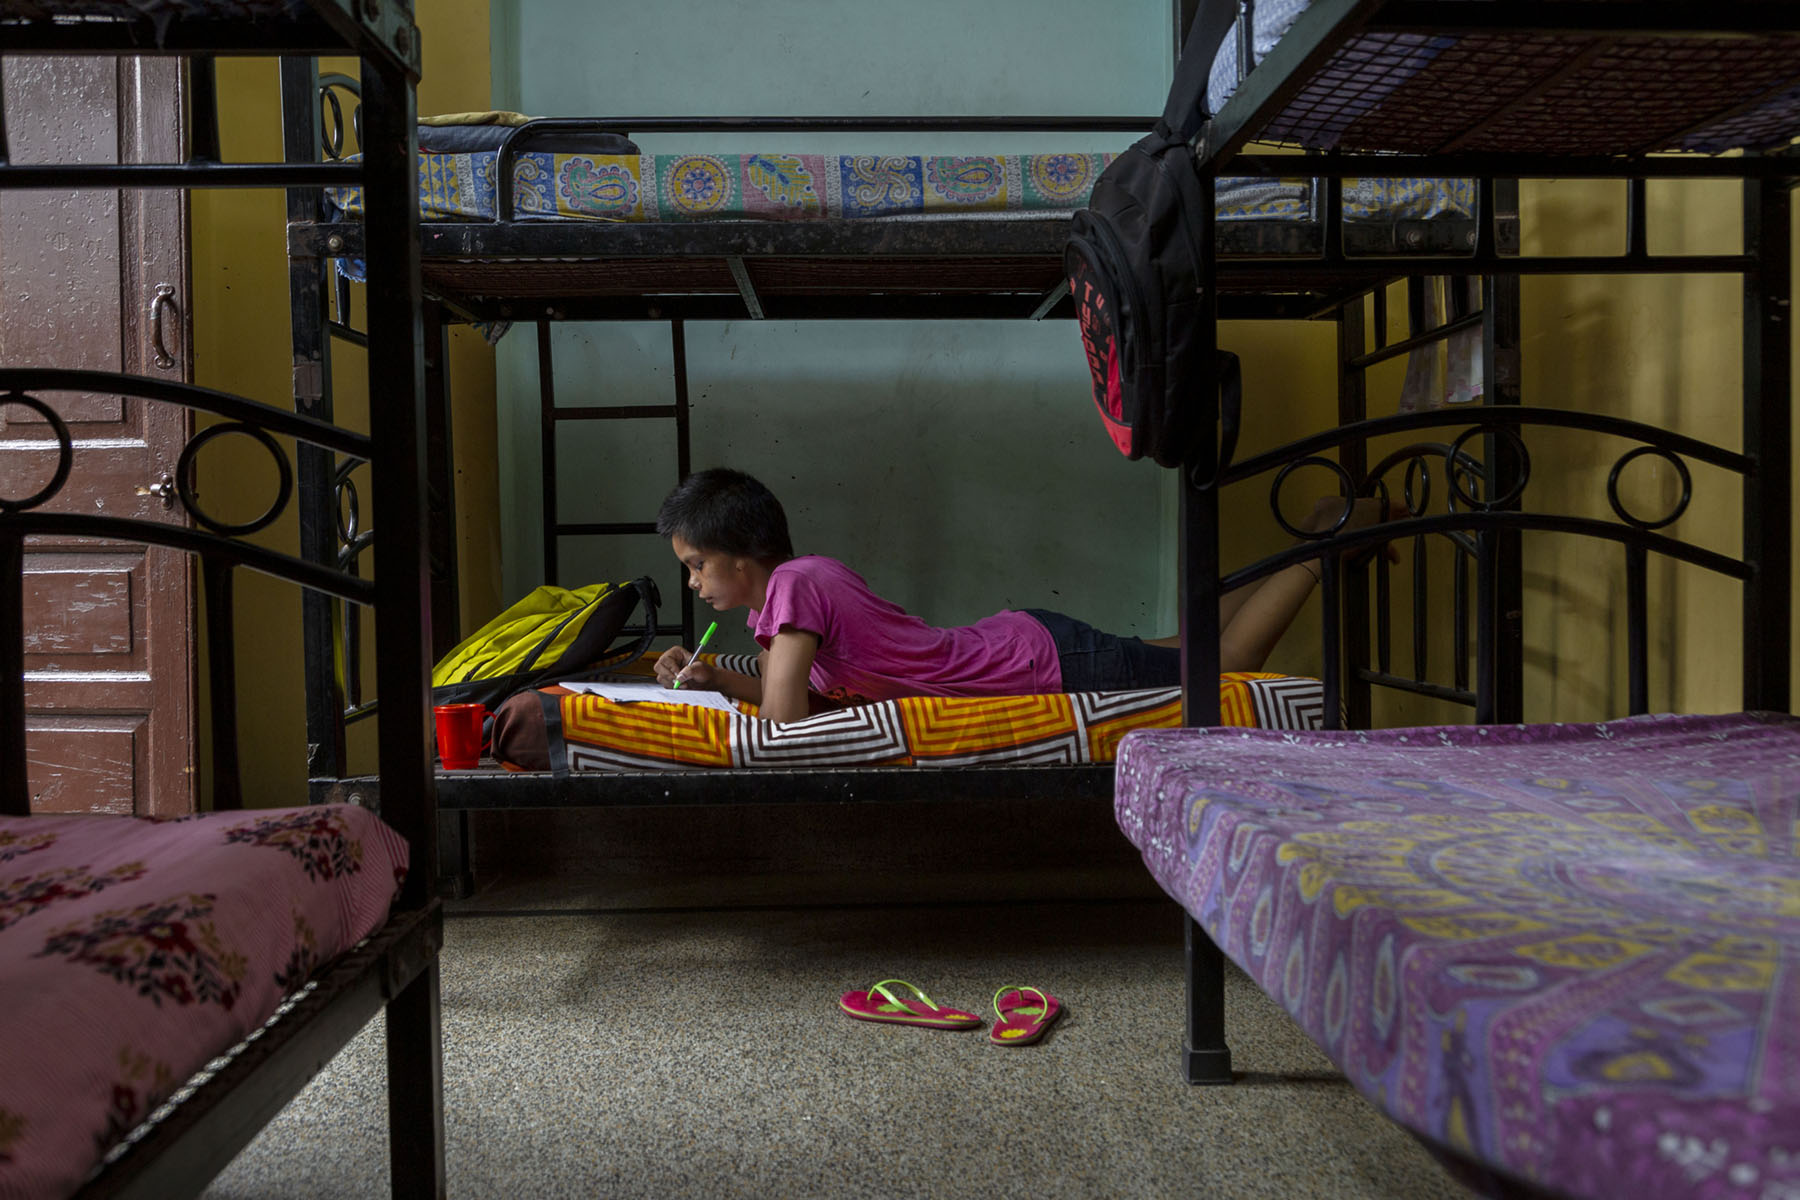 Israna wearing a pink T-shirt and black shorts is stretched out on the lower level of a bunk-bed. The metal frame of the bed is painted black. She is lying on her stomach and writing something in a book with a green pen. There are two bunk-beds on either side perpendicular to her bed. Her mattress is covered with a bedspread in a pattern of orange, black and white squares.